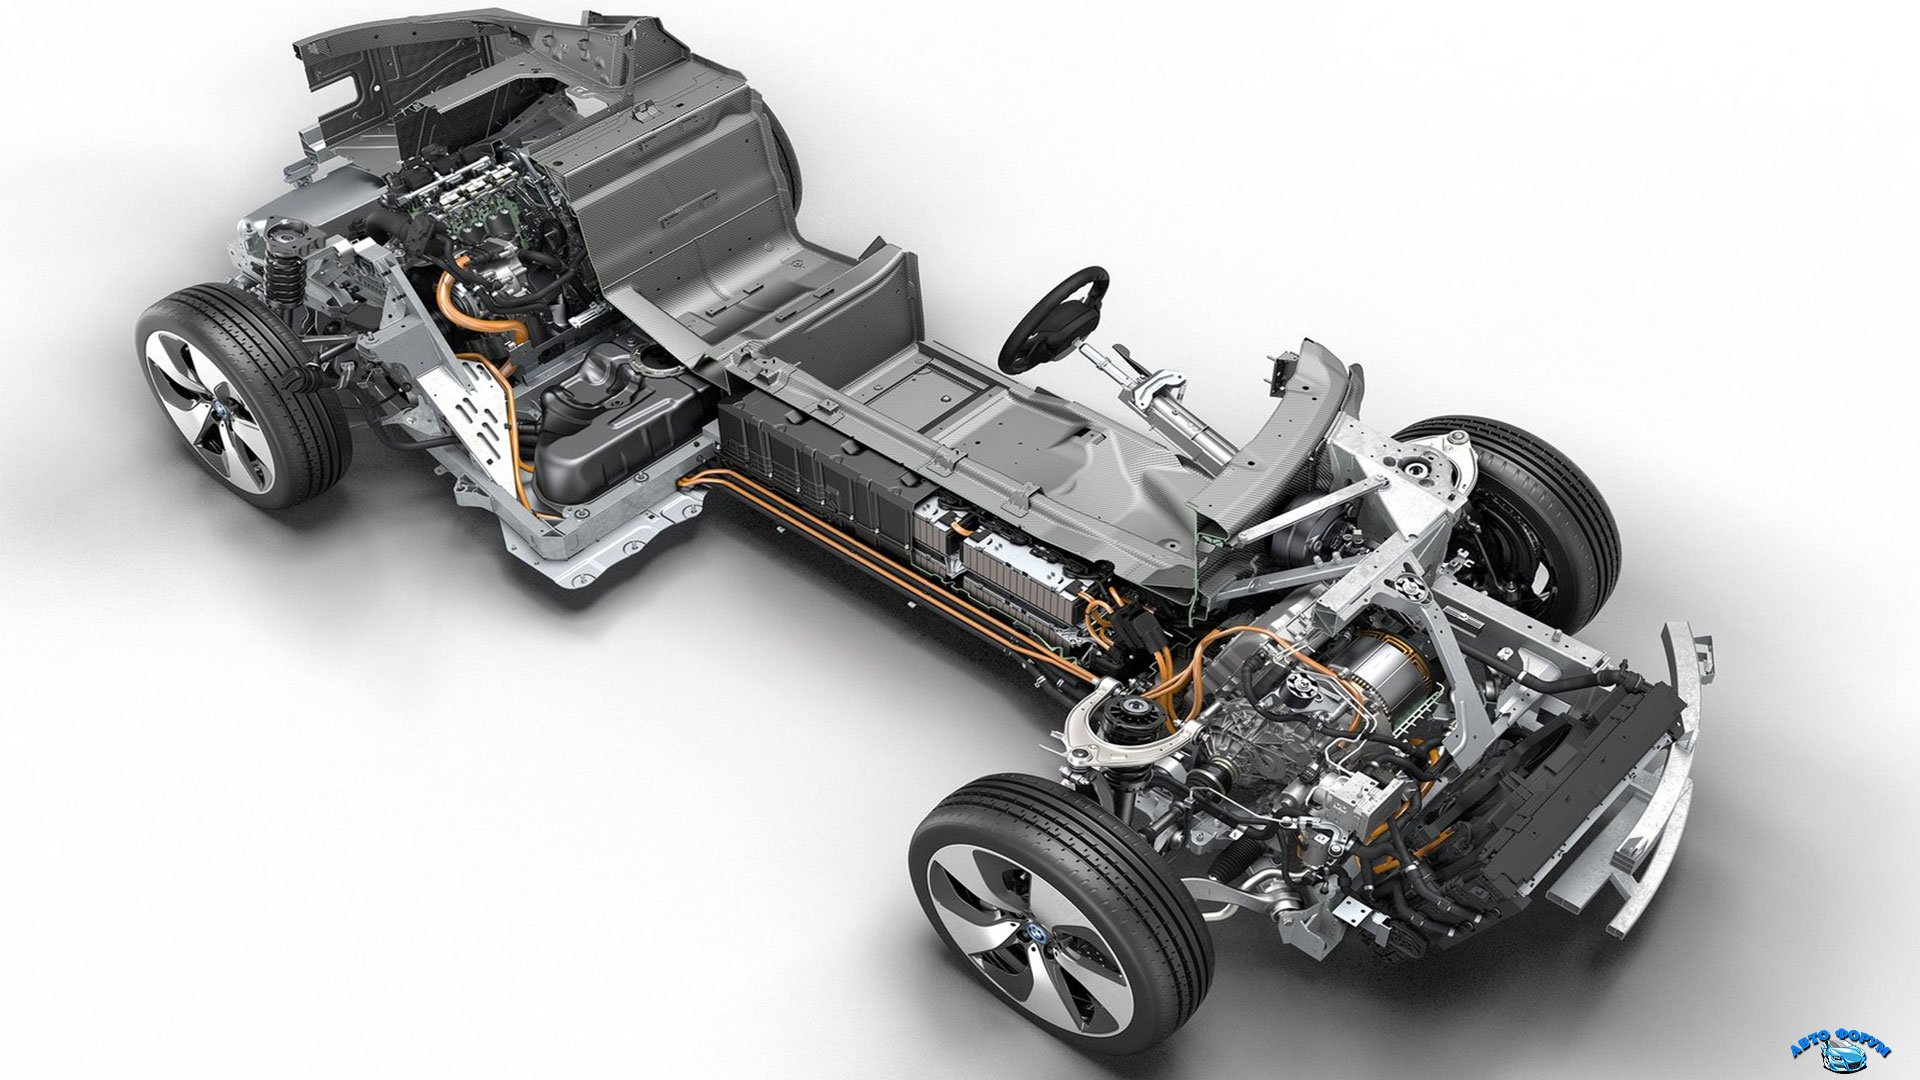 2015-BMW-I8-engine.jpg